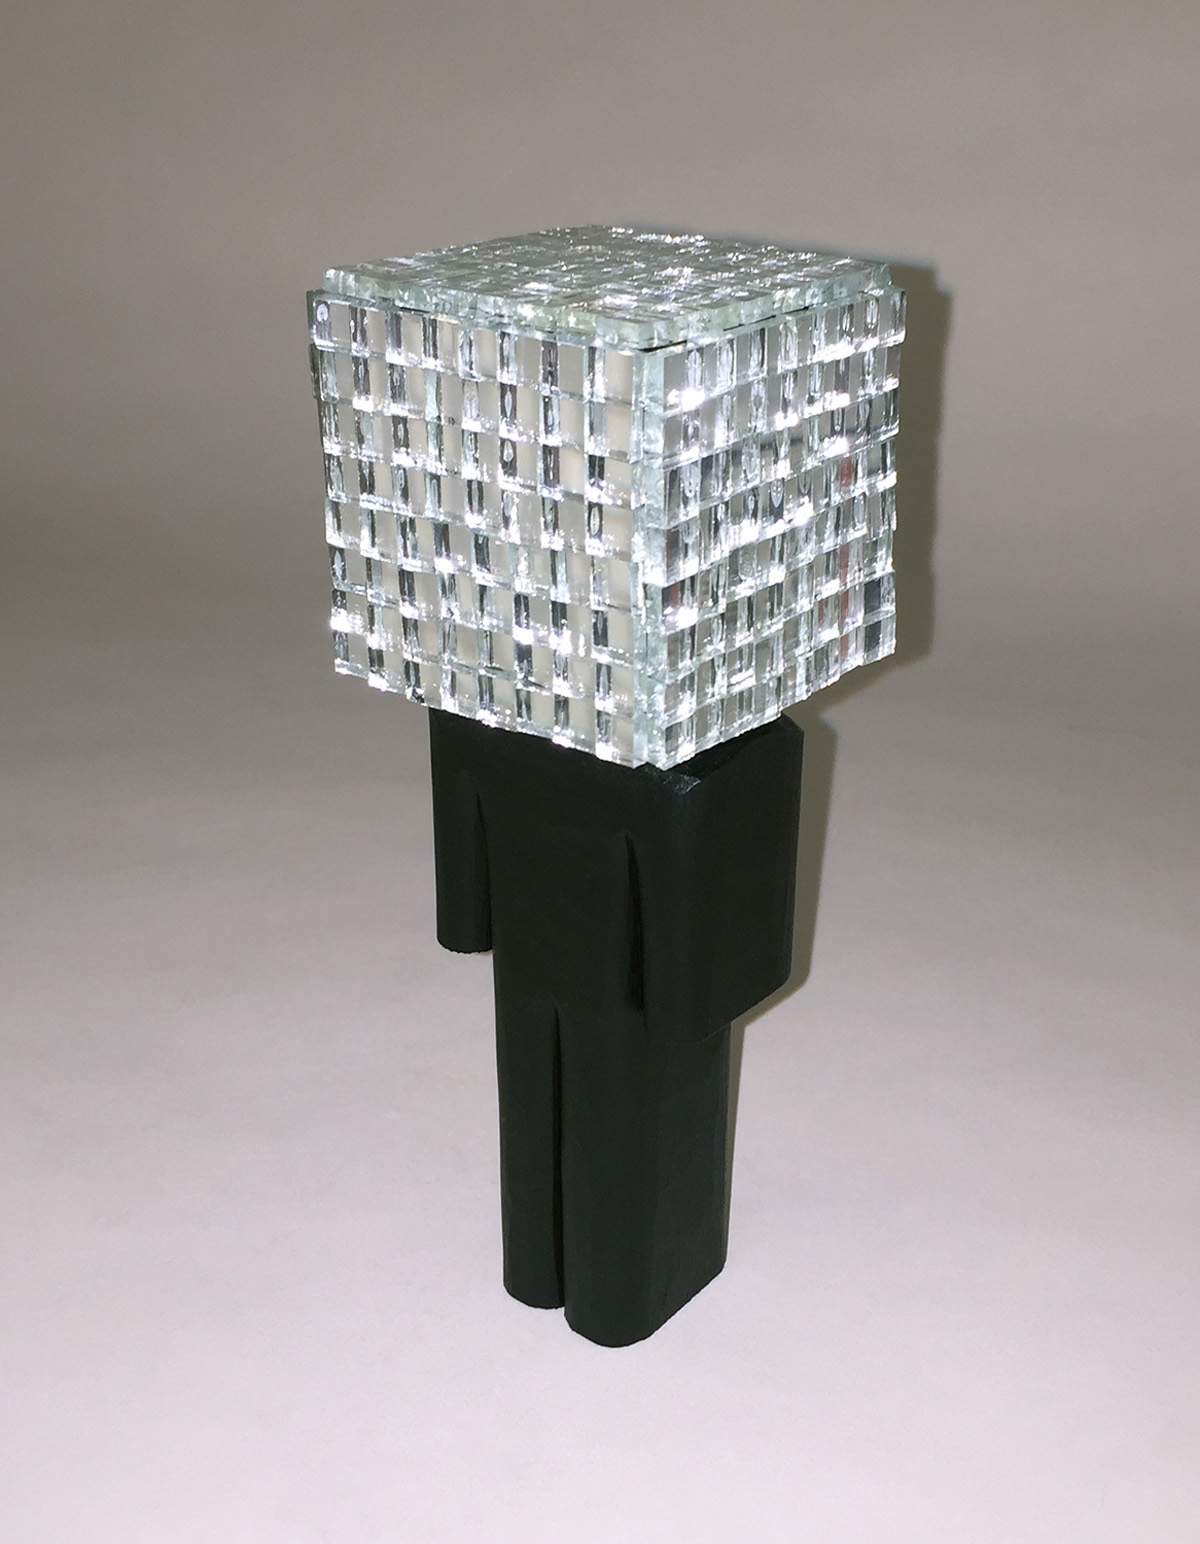 Mirrorball acrylic, basswood, mirror tiles 6.25×1.75×1.75 inches